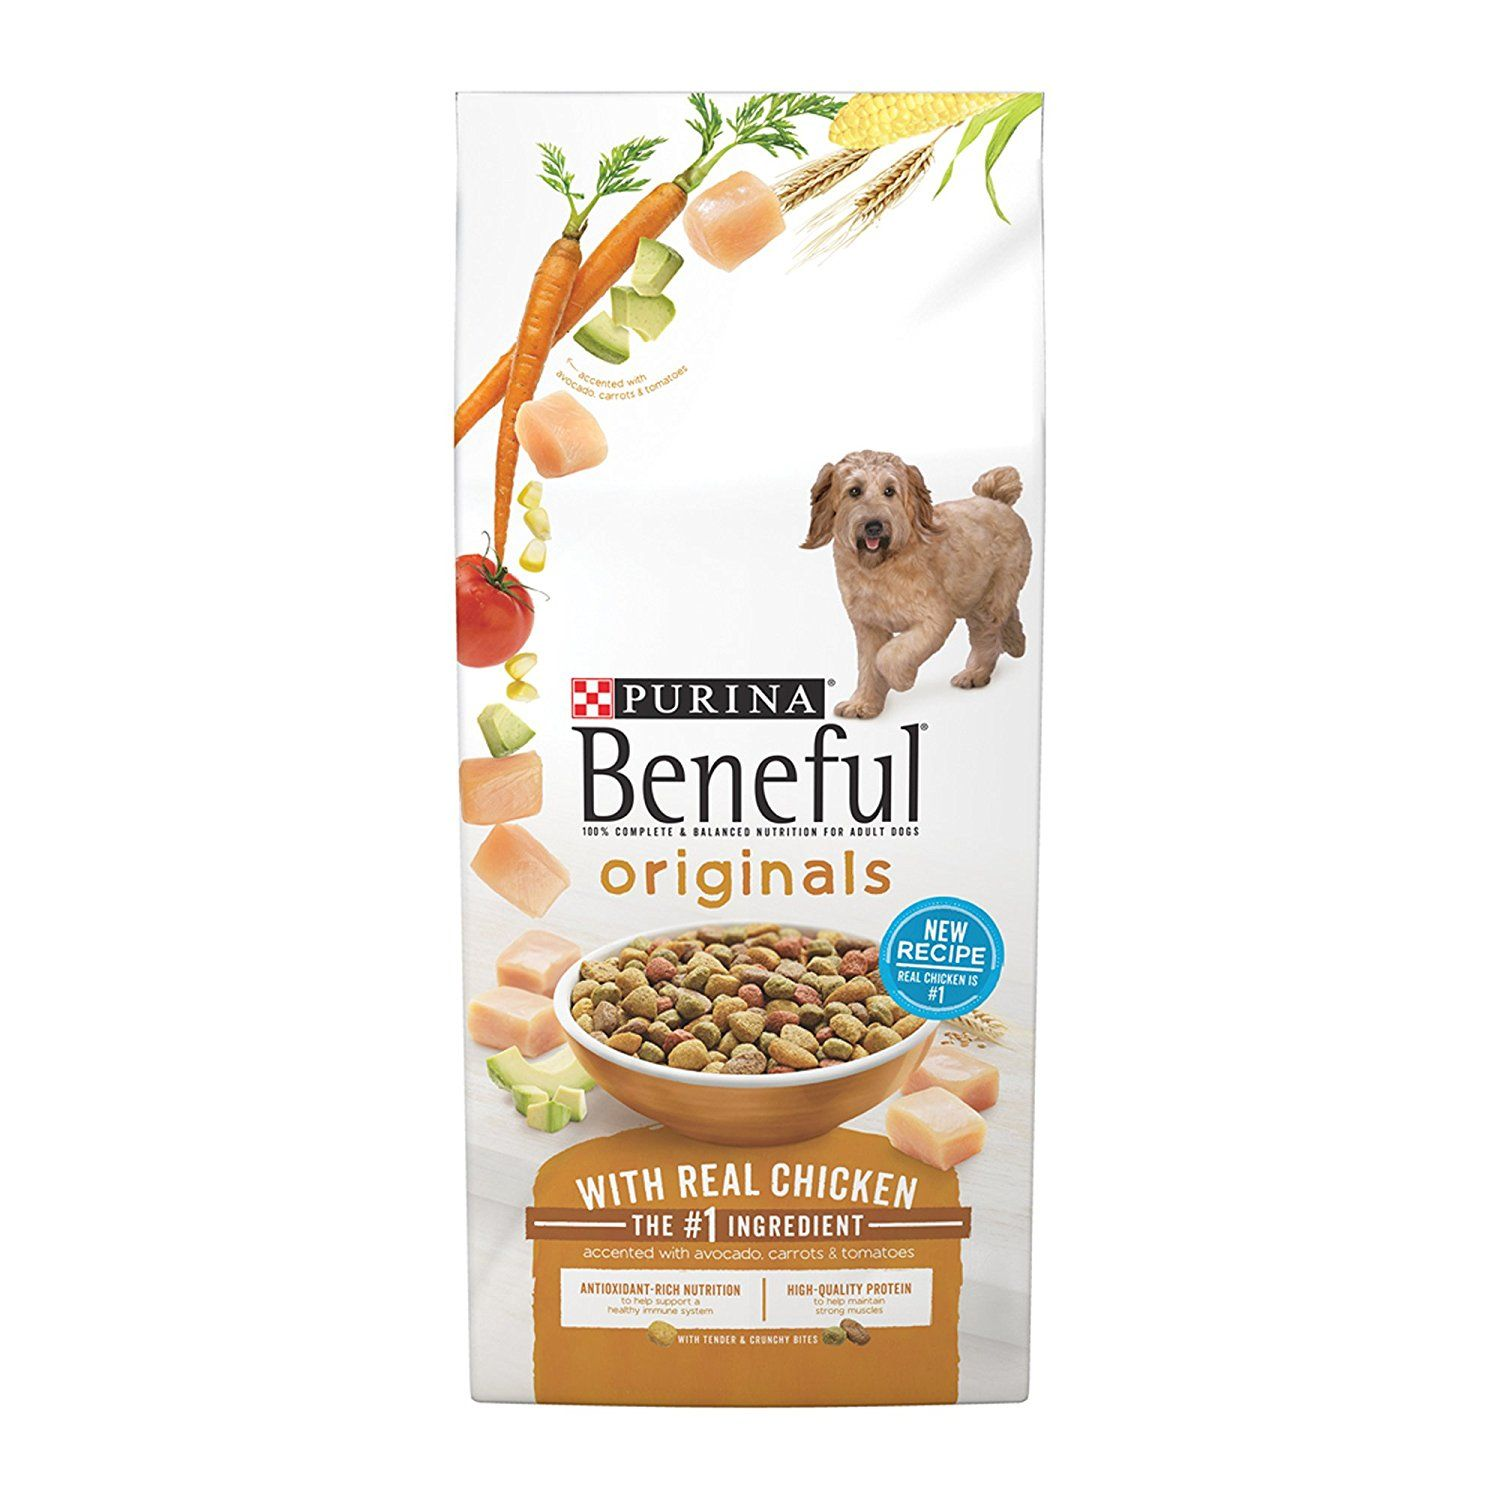 Purina Beneful Originals With Real Chicken Trust Me This Is